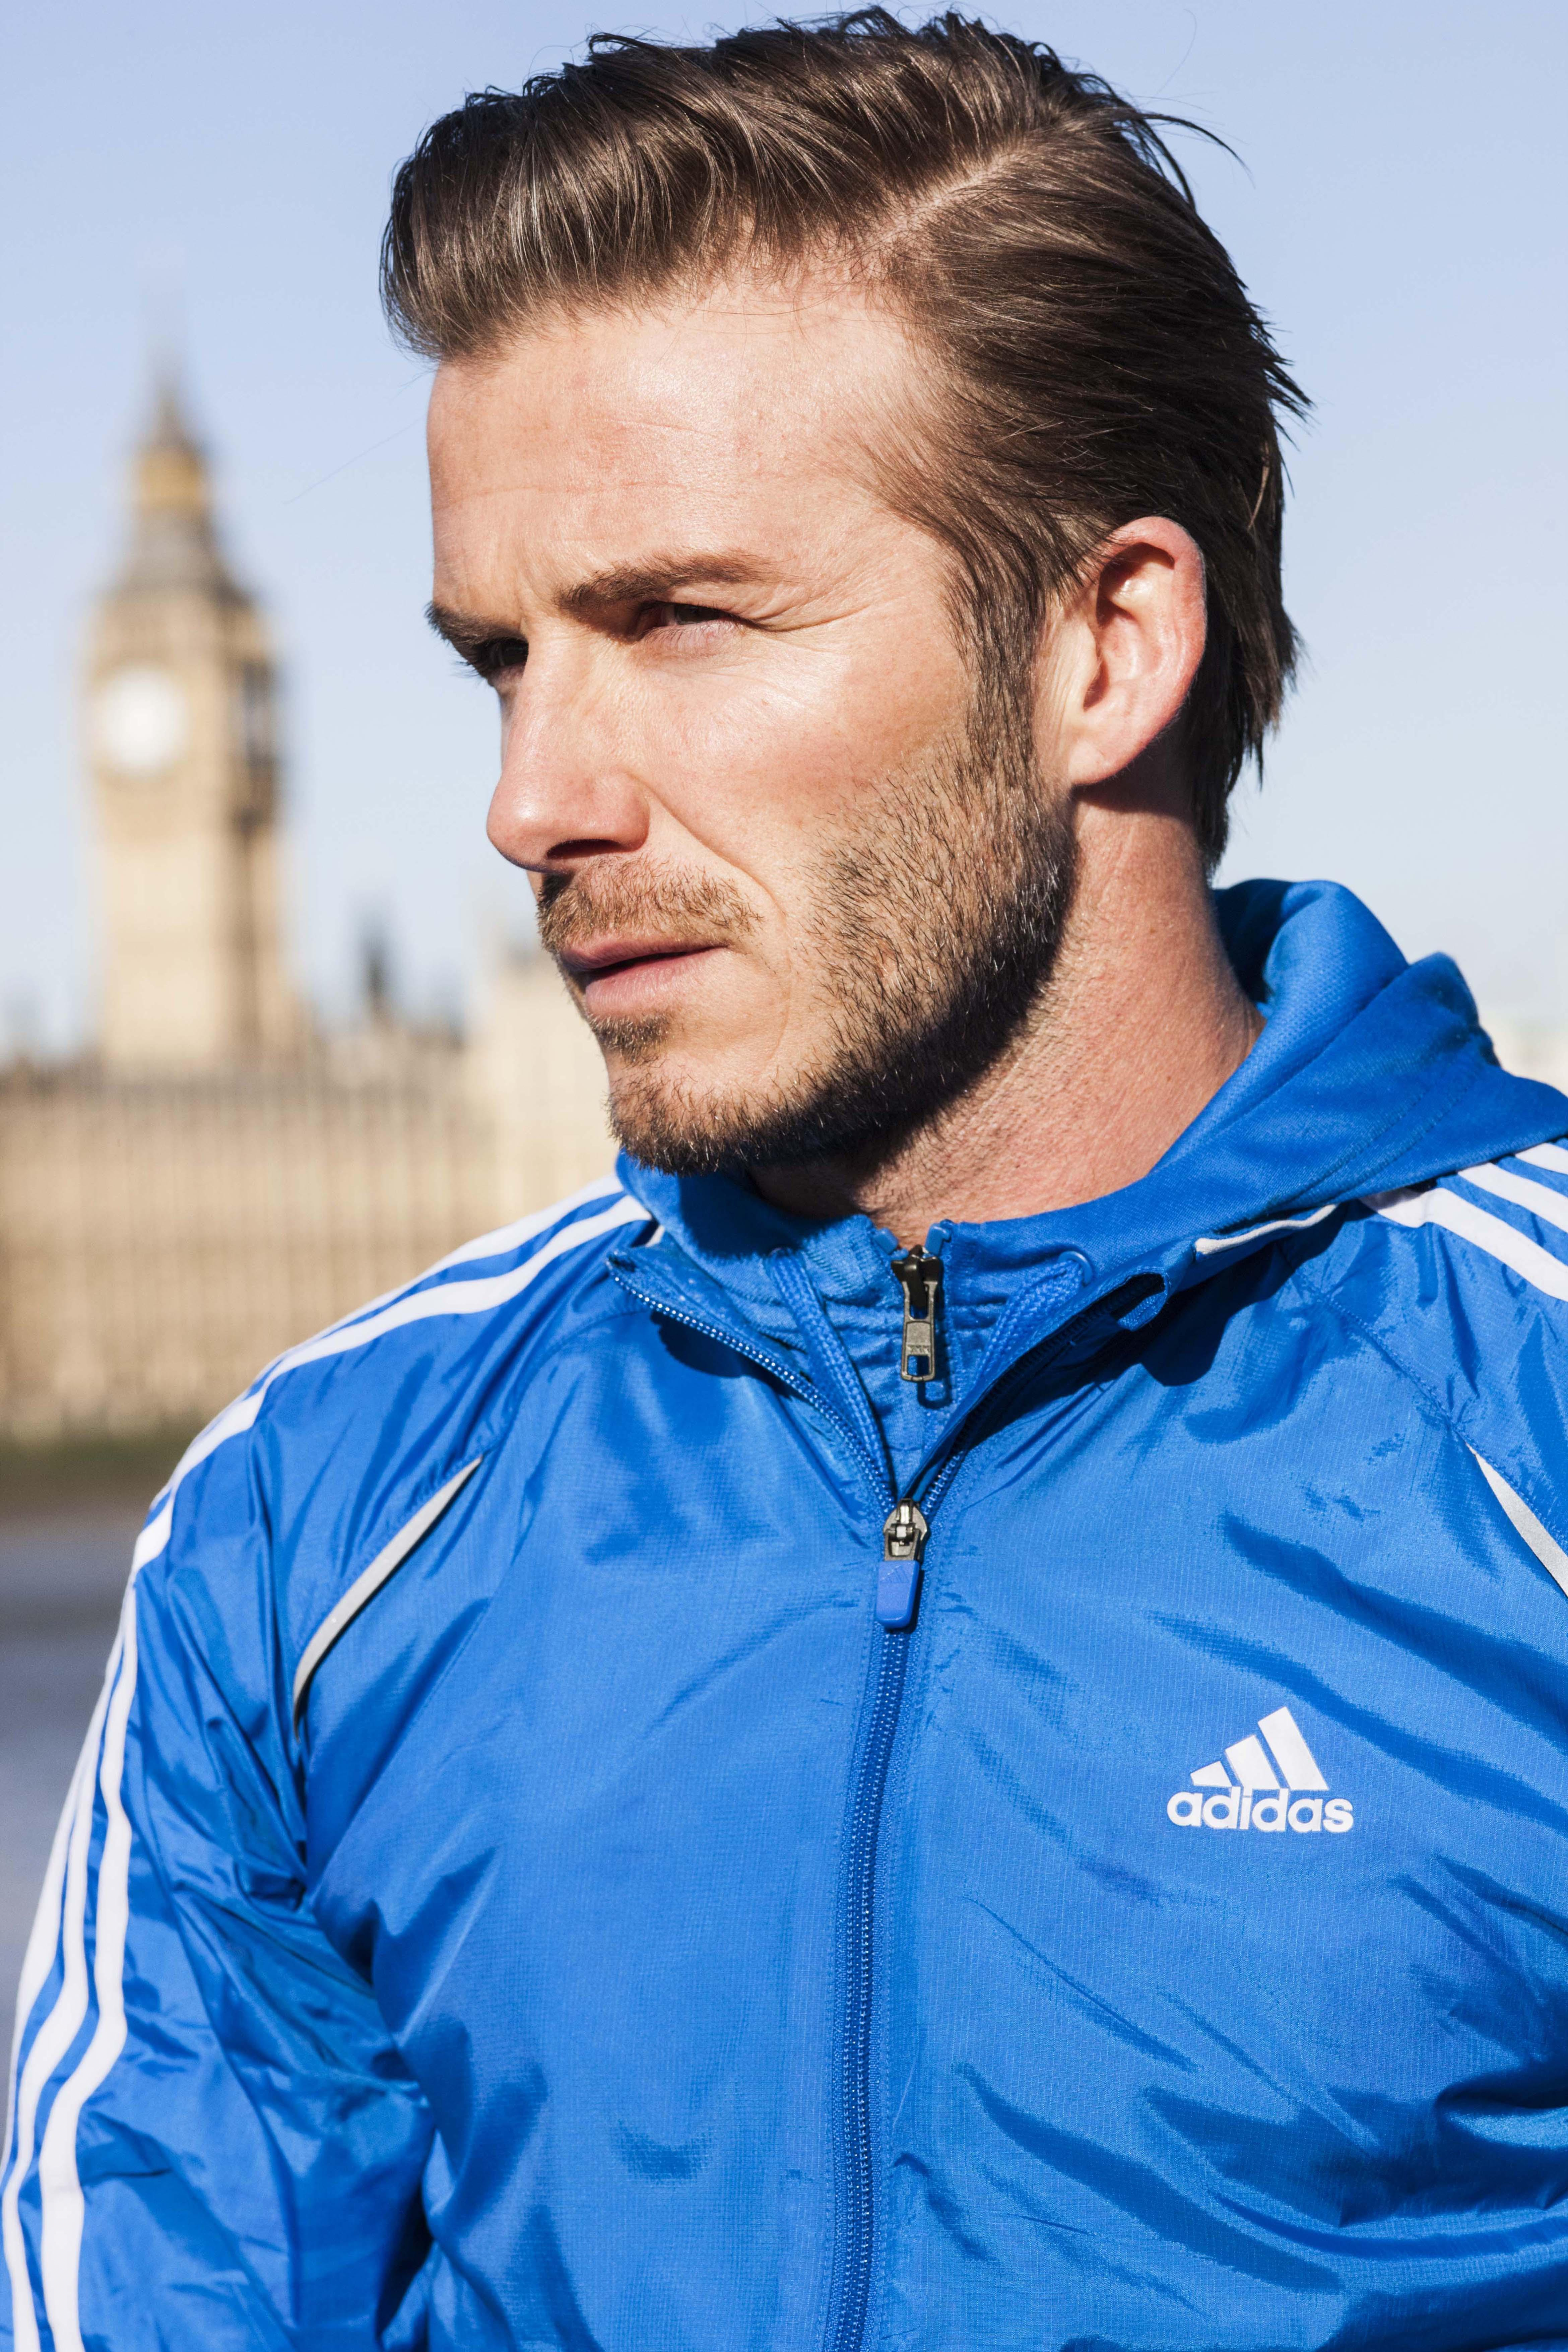 50% or More Off Select adidas Training Apparel @ Amazon.com